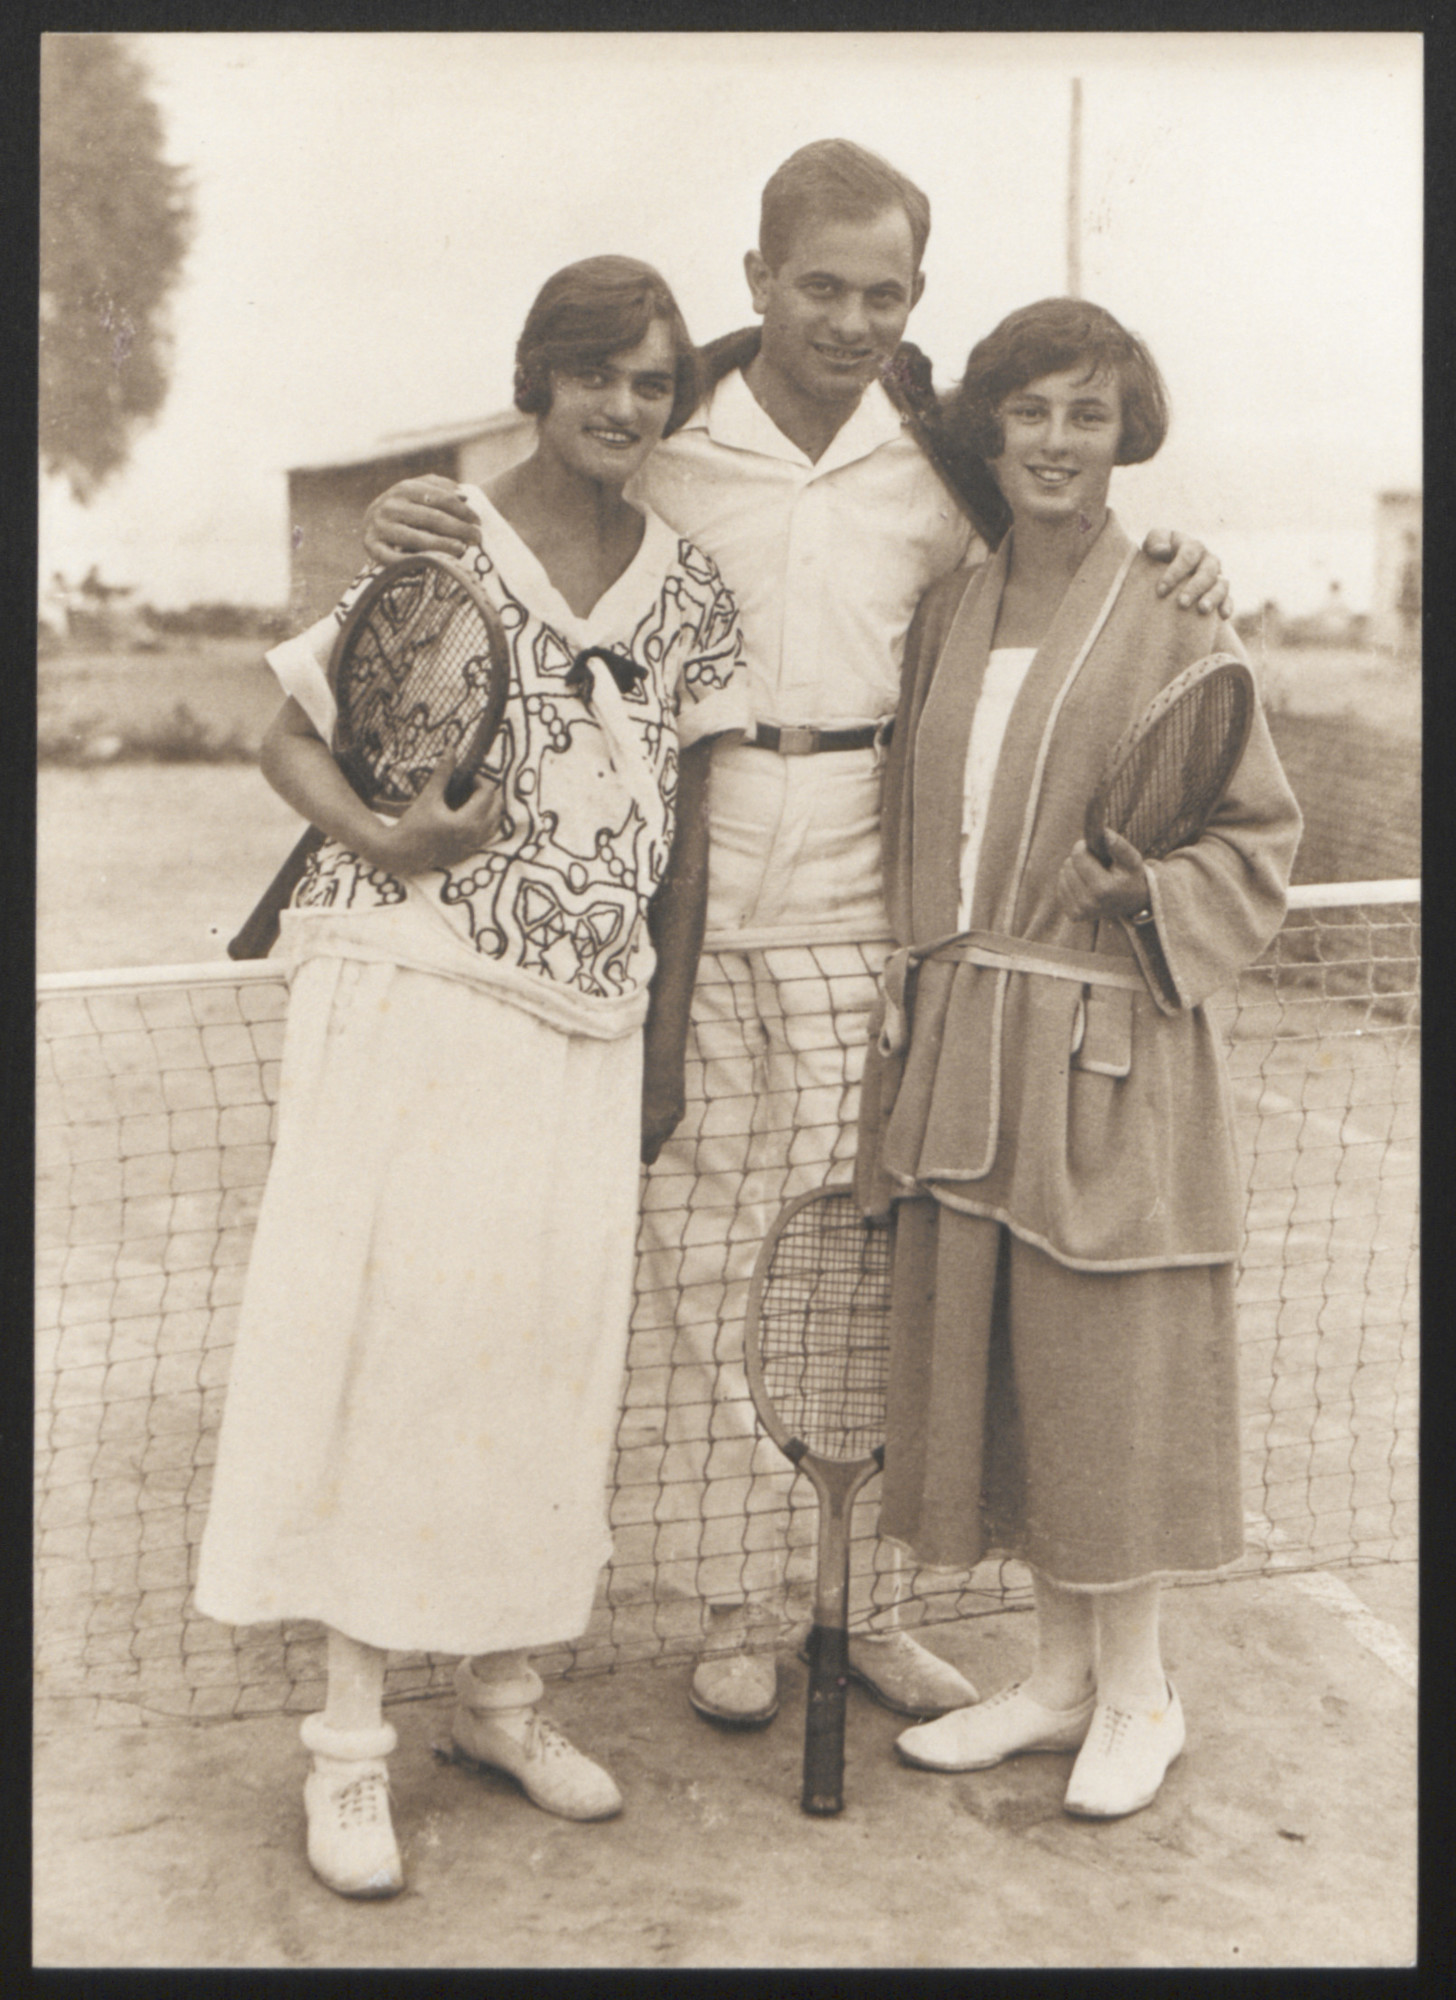 Ernestine (Ily) Munk, her brother Louis Munk, and his sister-in-law Macko Garay (nee Adler) pose together at a tennis court.